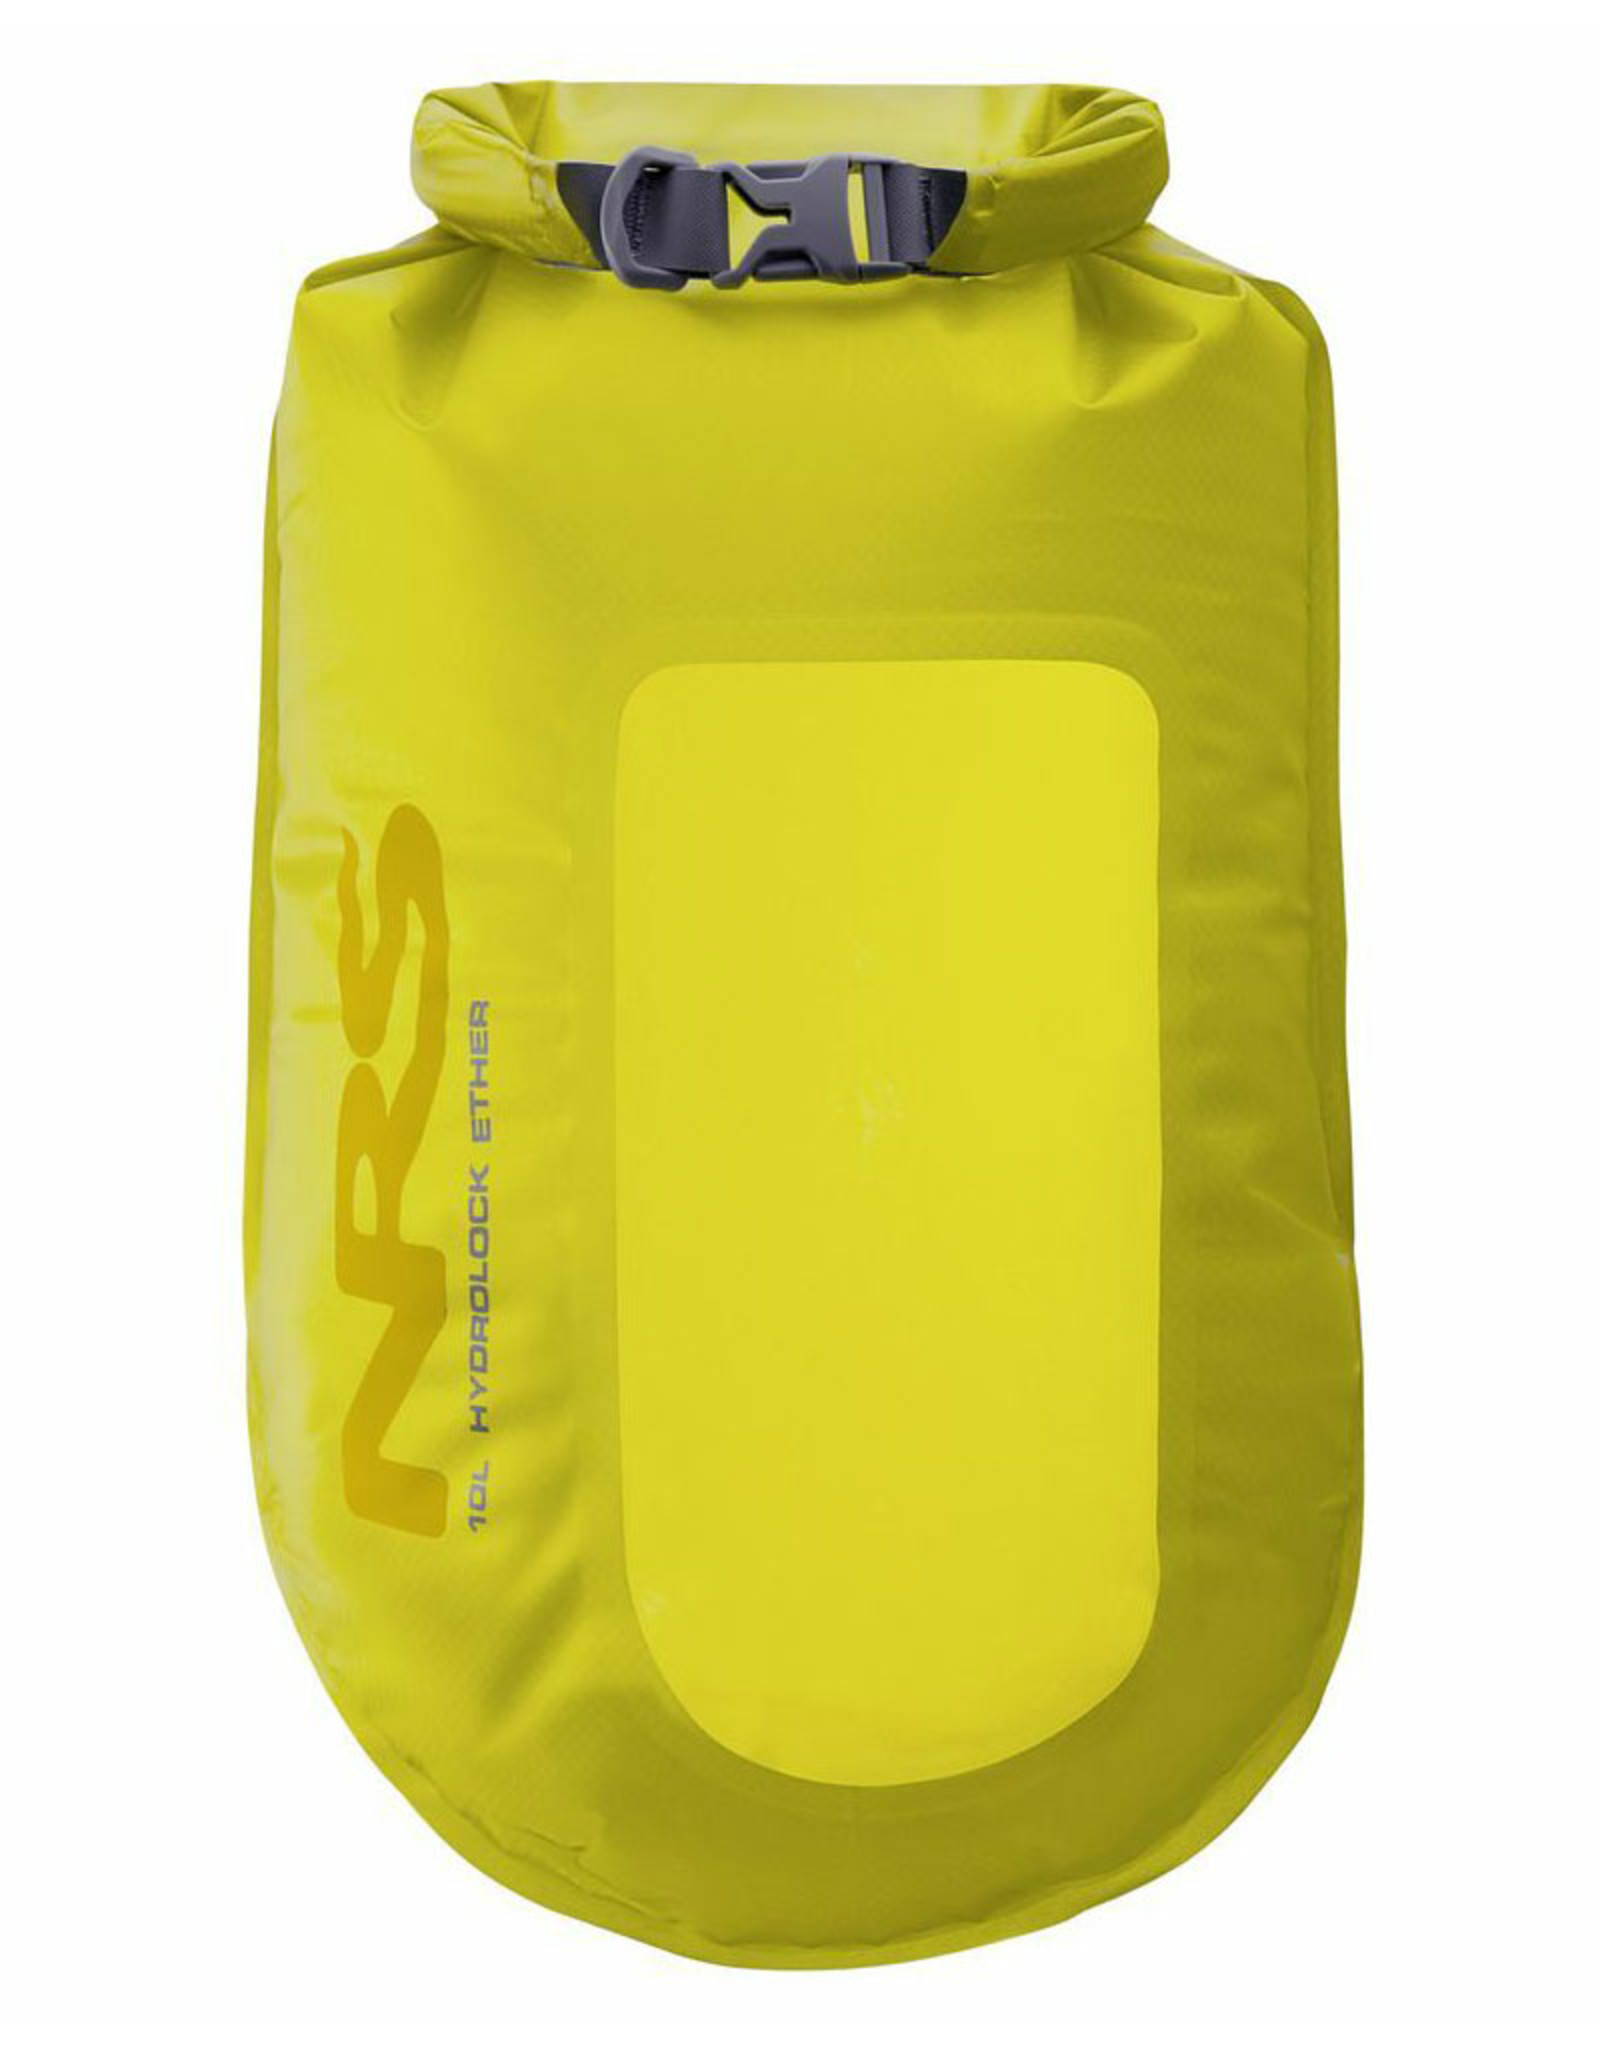 NRS NRS Ether HydroLock Dry Bag